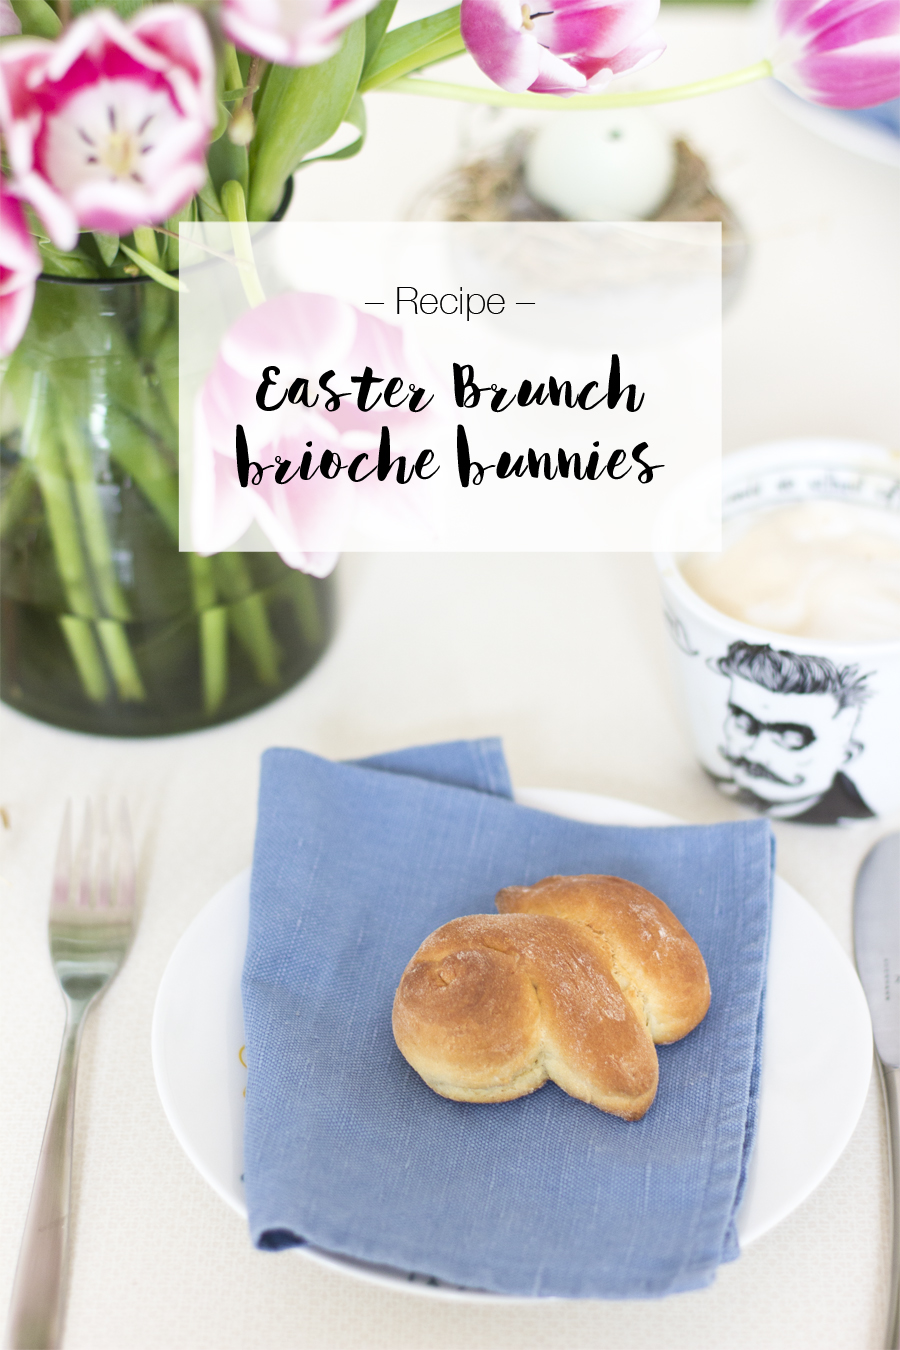 Easter brioche bunnies recipe | LOOK WHAT I MADE ...